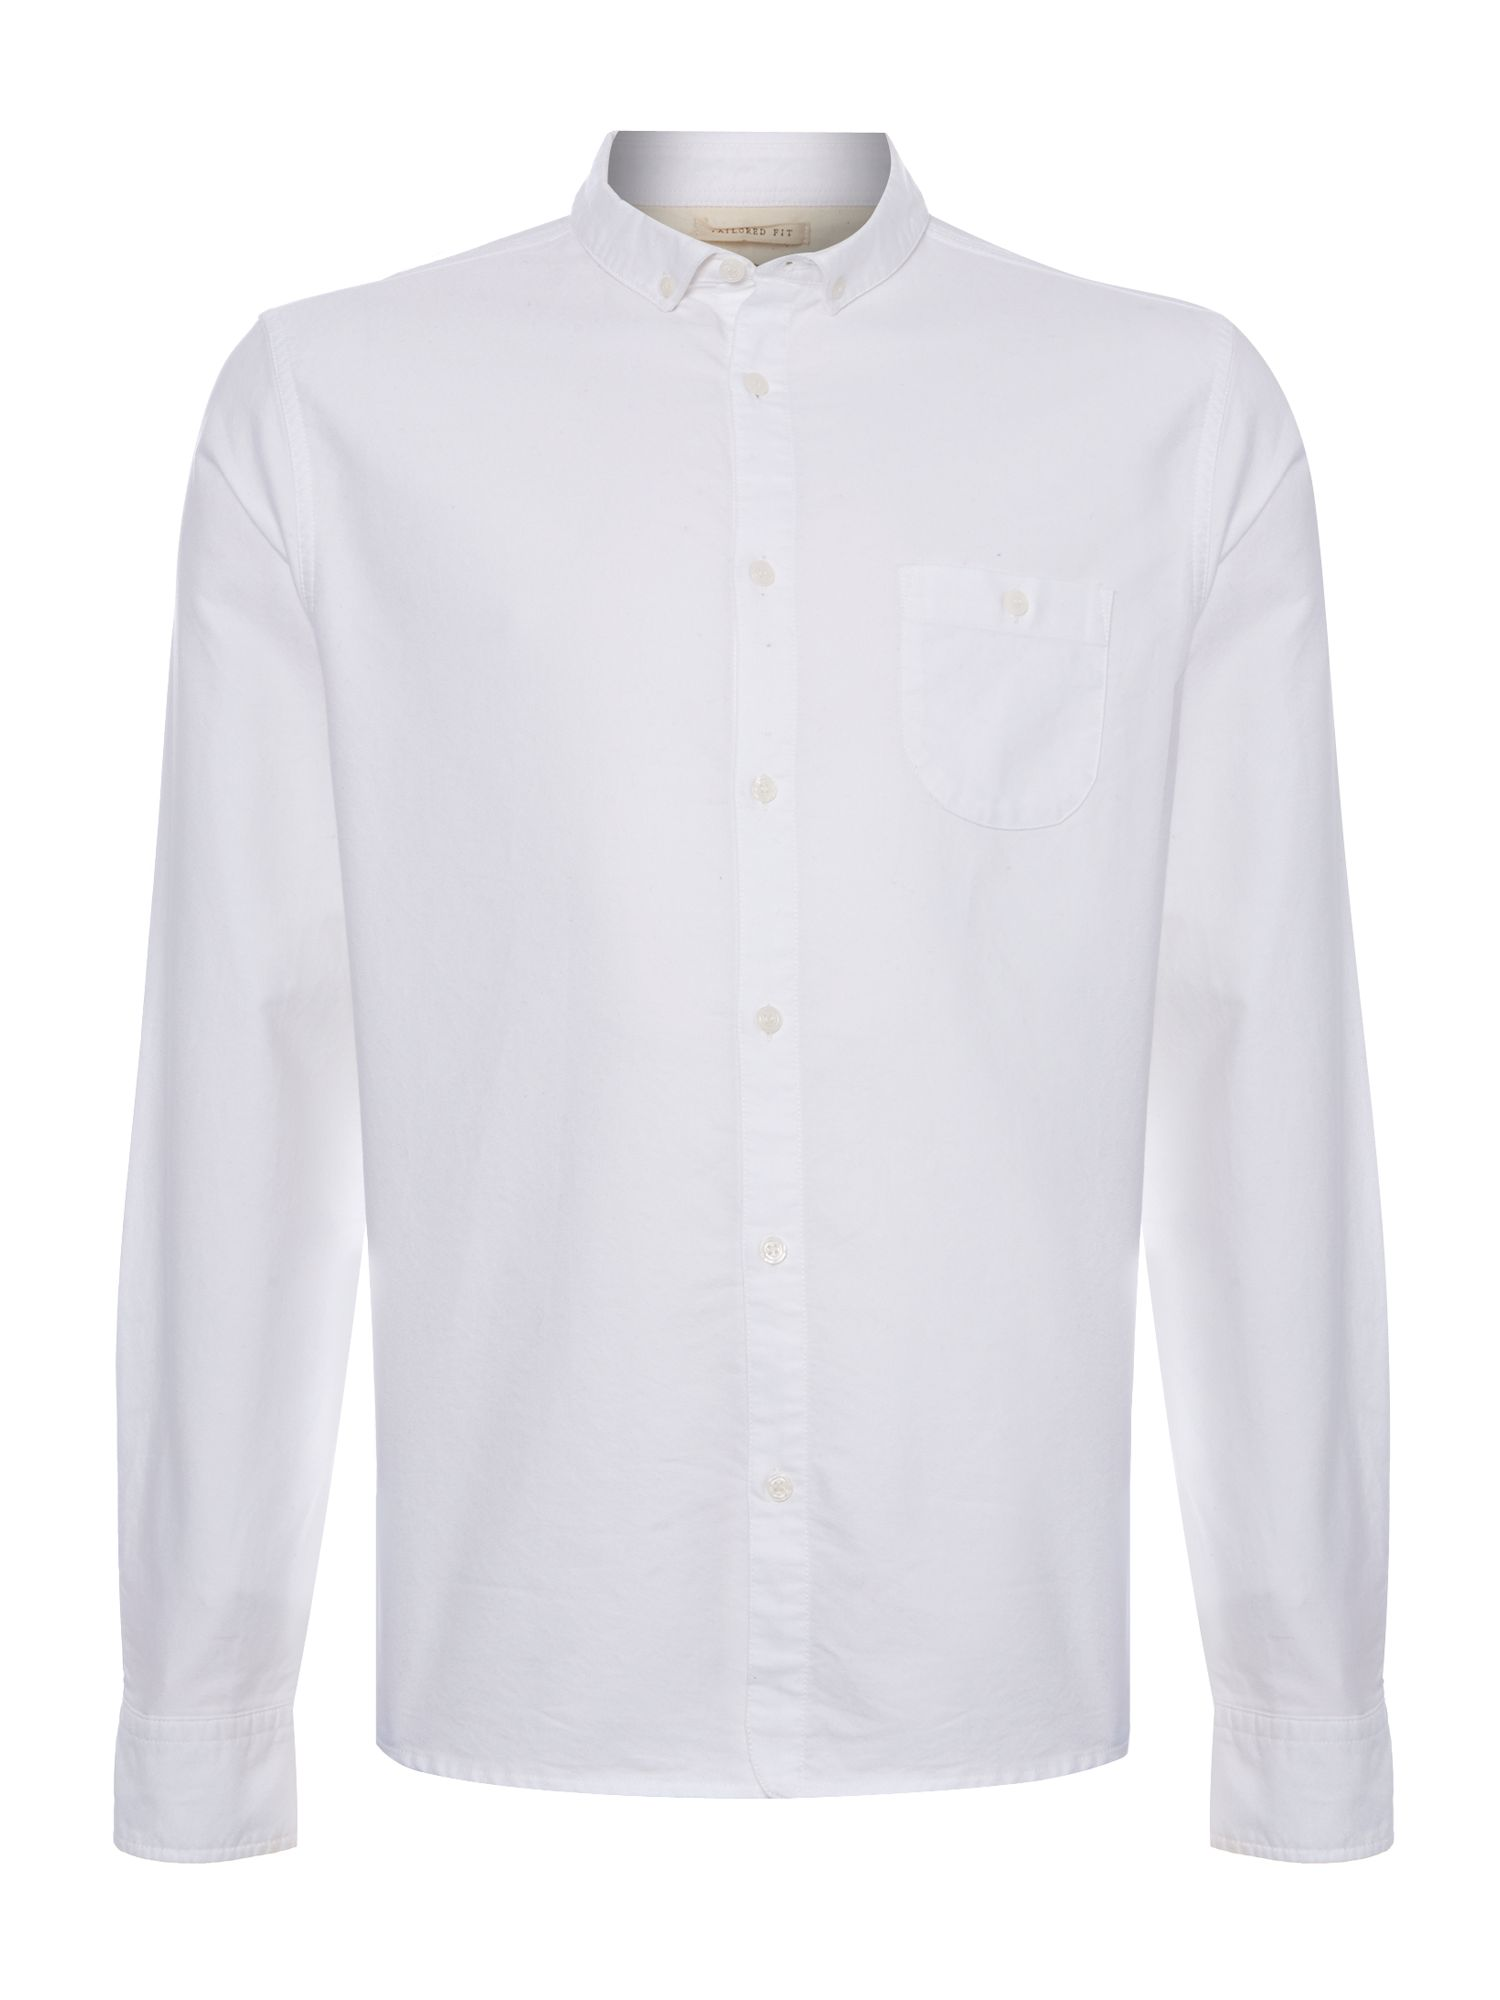 Avenue rounded pocket oxford long sleeve shirt